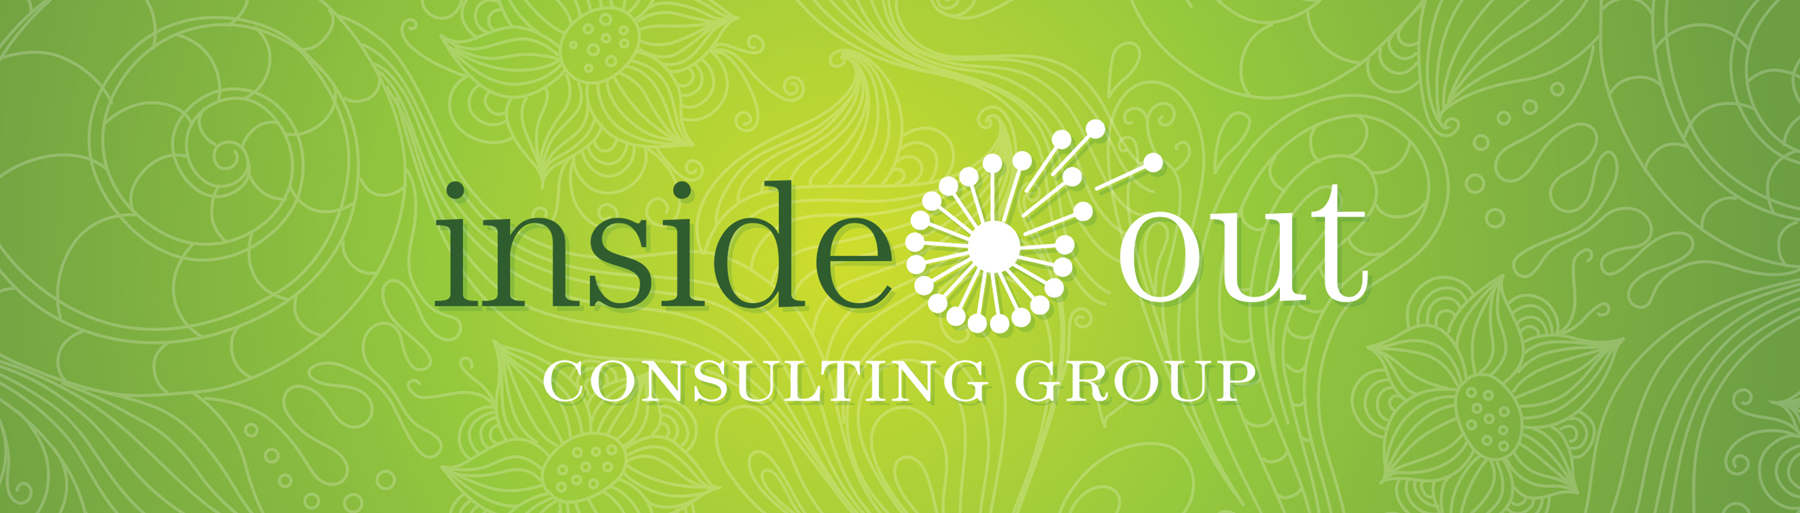 Inside Out Consulting Group Logo on Green background Wallpaper